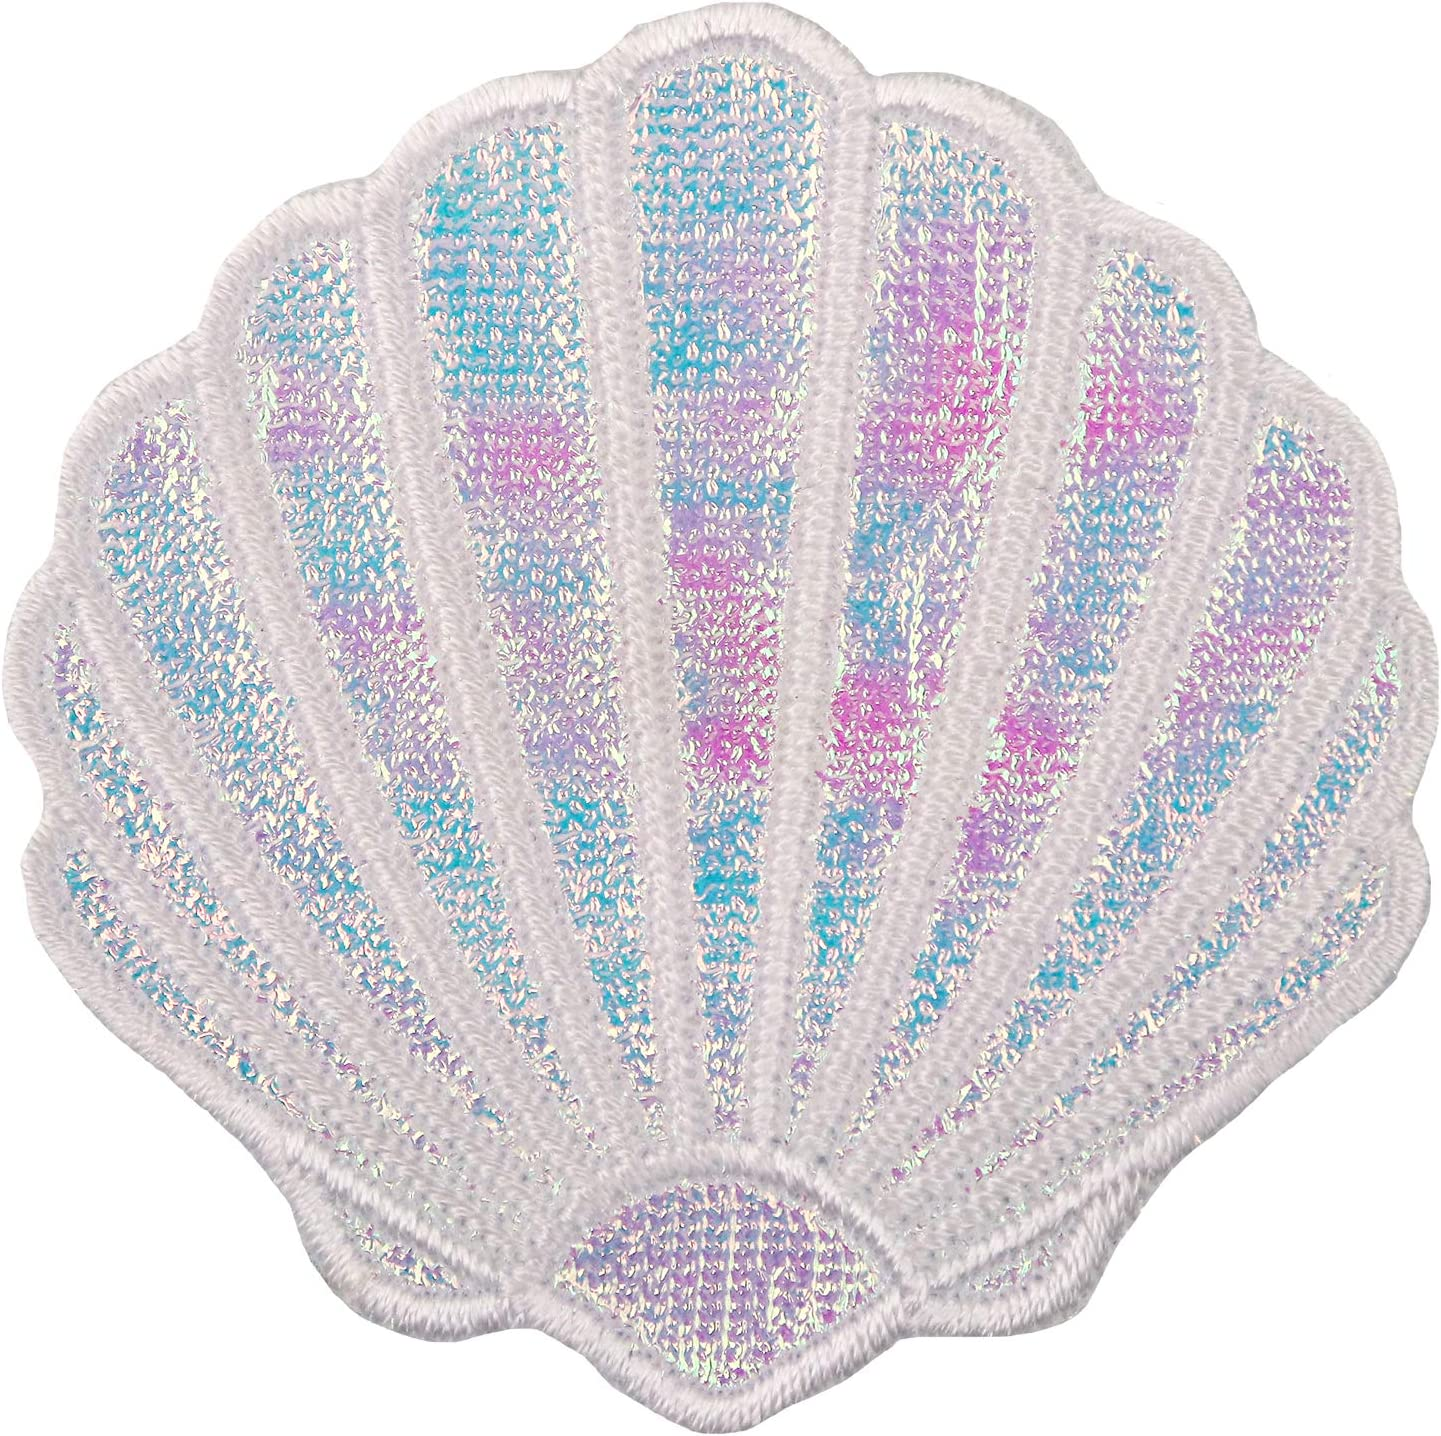 Simplicity Pink and Blue Clam Shell Applique Clothing Iron On Patch, 2.25'' x 2.25''